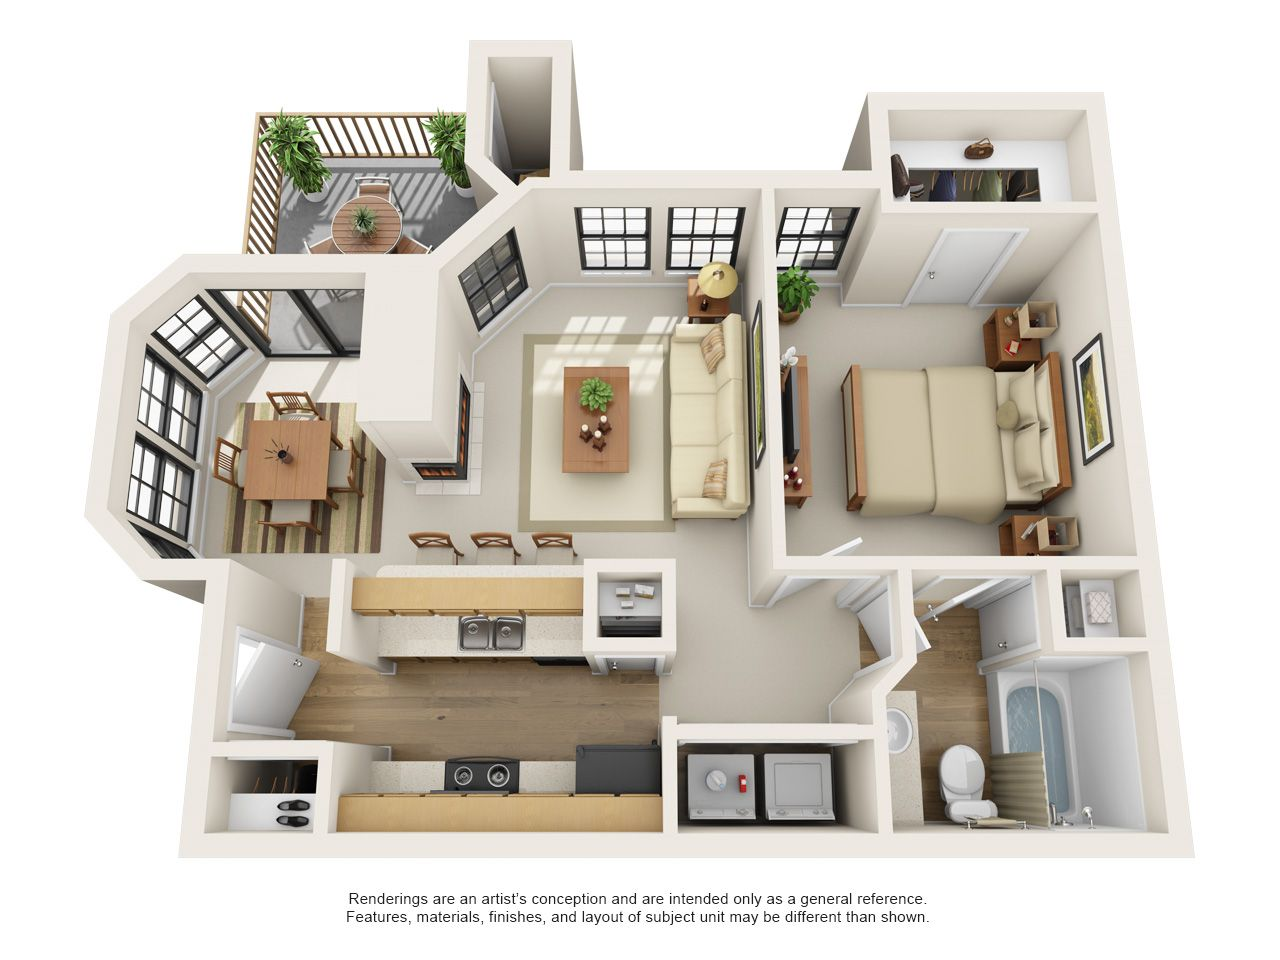 One And Two Bedroom Apartments In Dallas Tx Layouts Dallas Texas Apartment Steadfast Apartment Layout Small House Design Plans Sims House